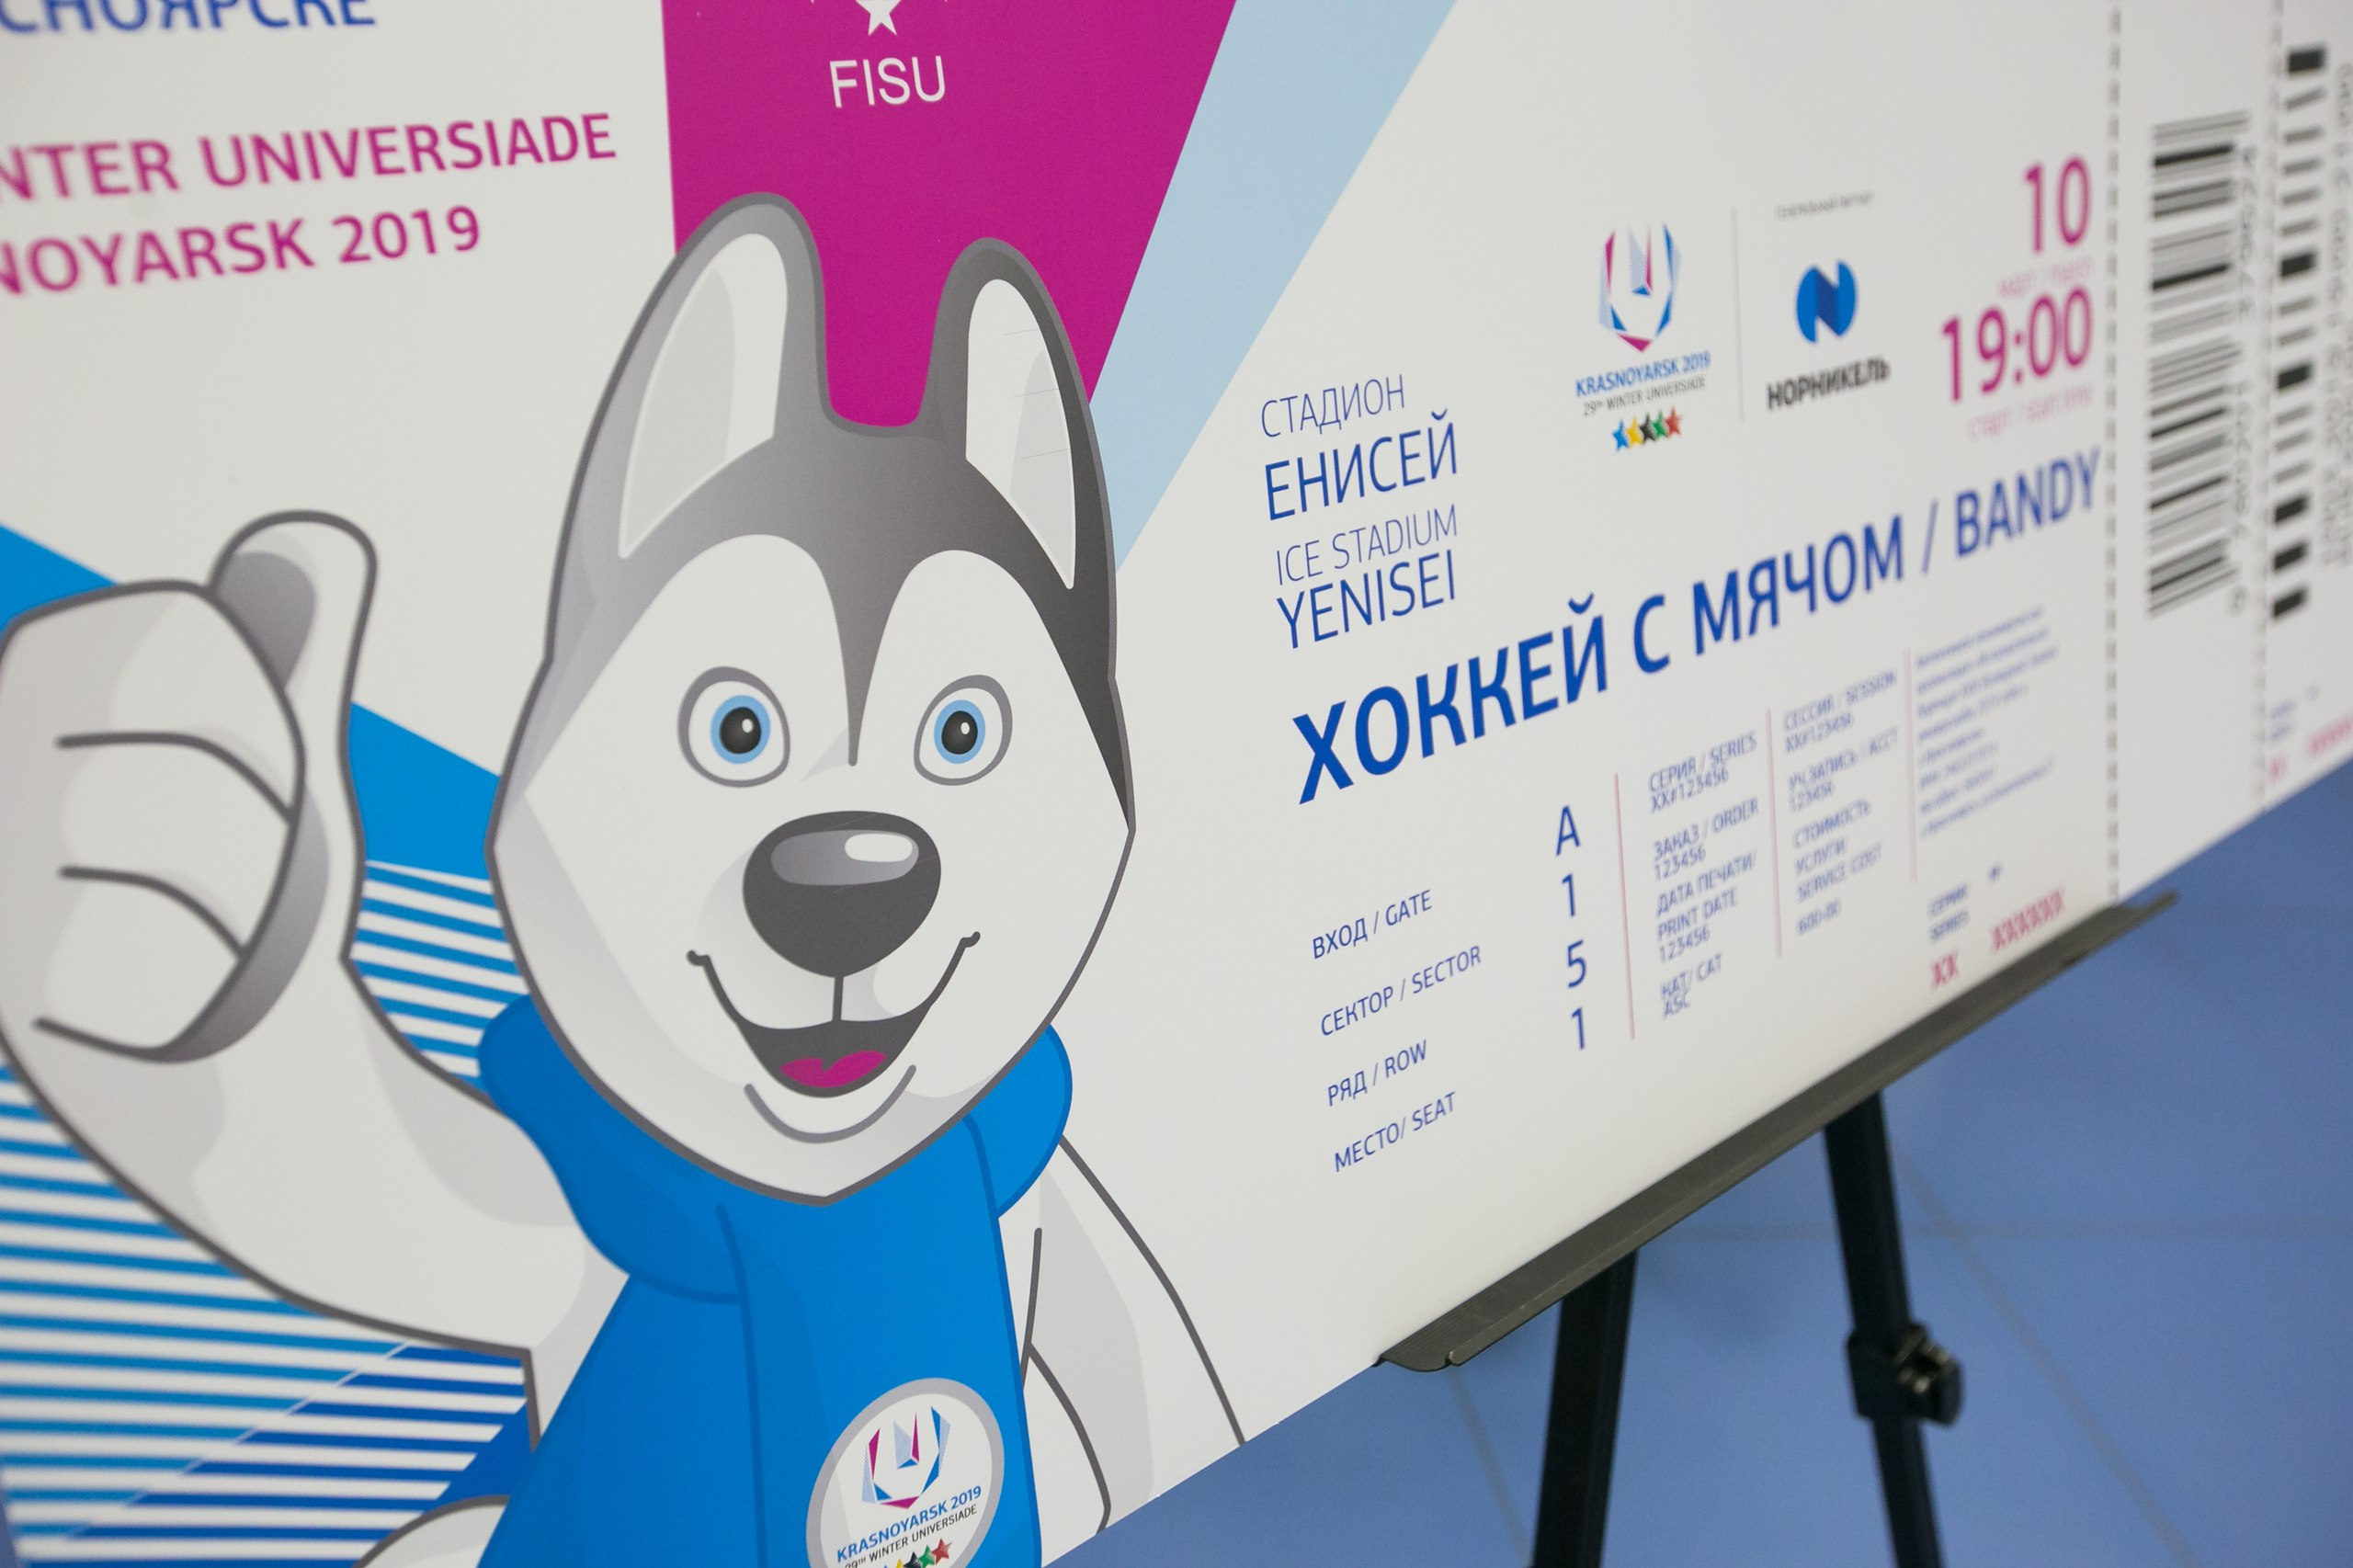 2019 Winter Universiade: Events, Venues, Host City And Sports